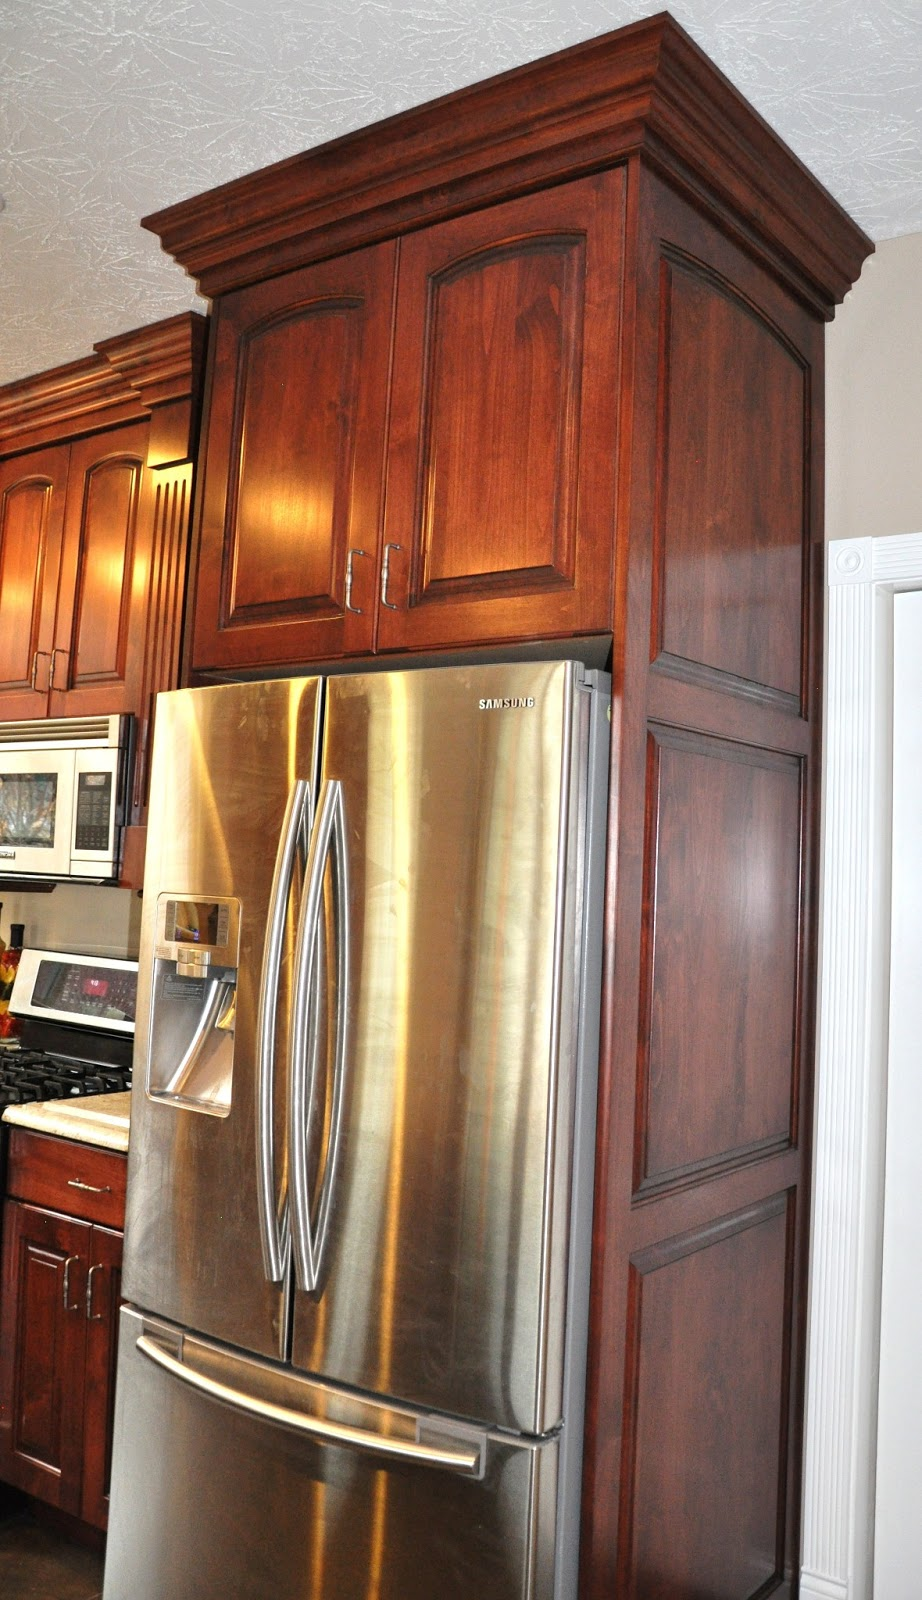 Stone ridge cabinets april 2012 - Posted By Chris At 1 41 Pm 0 Comments